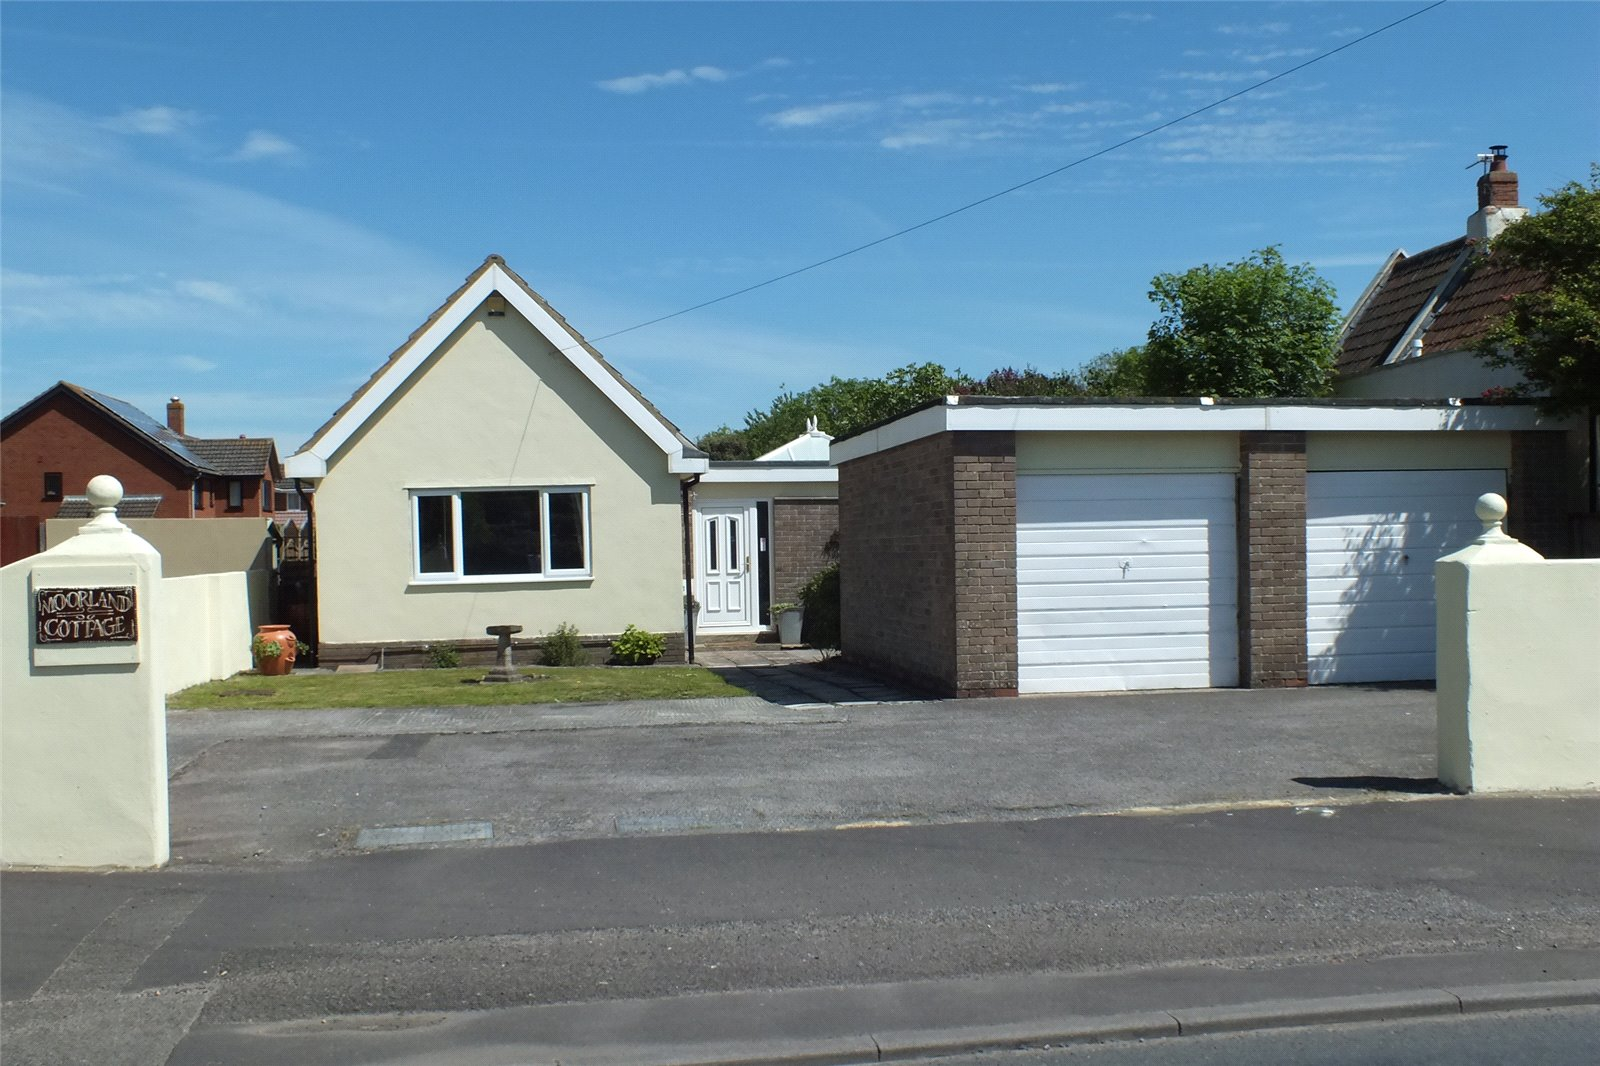 Cj Hole Burnham On Sea 3 Bedroom Bungalow For Sale In Coast Road Berrow Burnham On Sea Ta8 Cj Hole